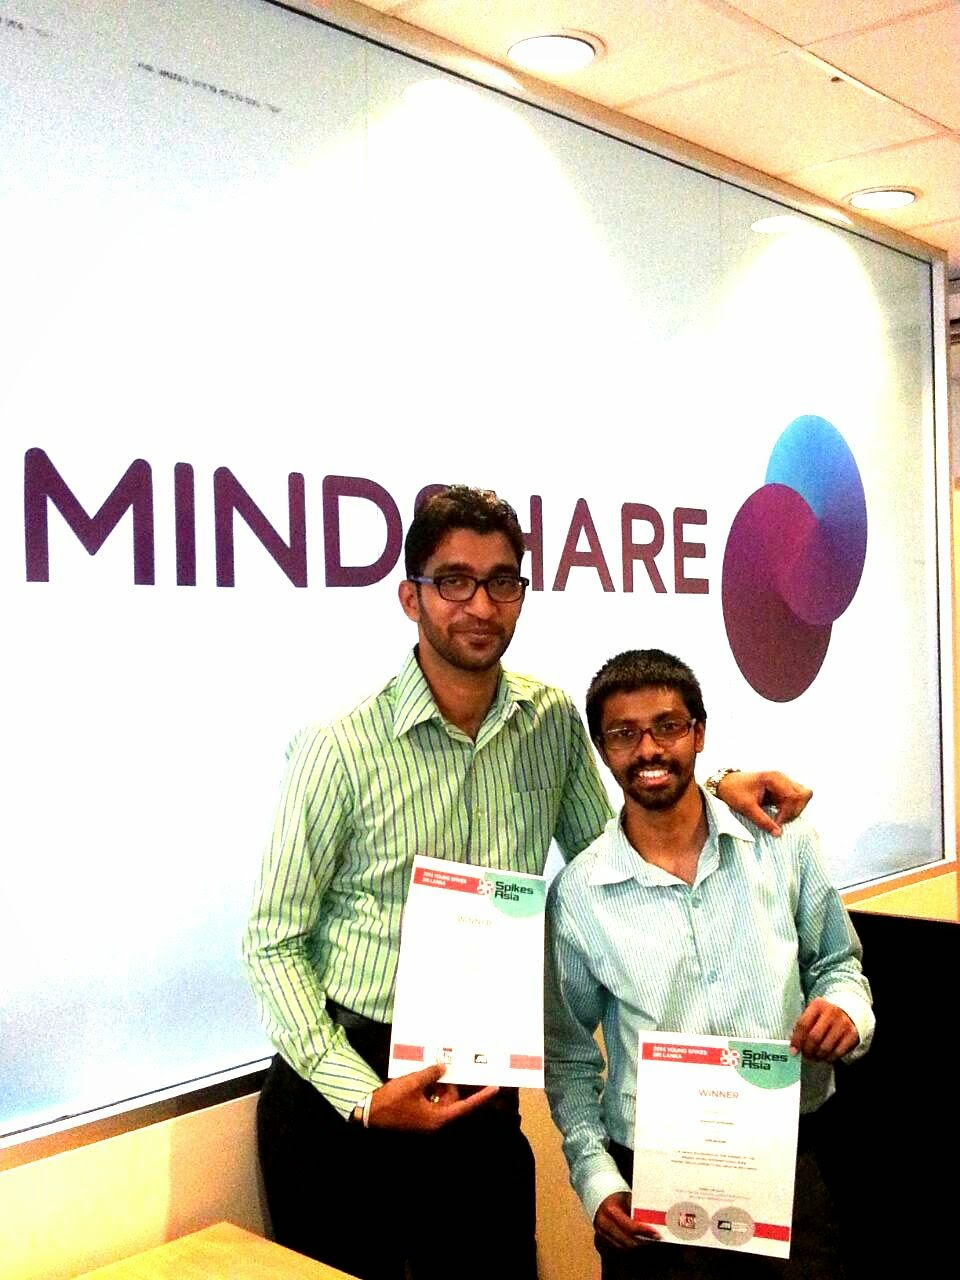 Mindshare's Supun Hettiarachchi (L) and Seninda Bandara won the Young Spikes Media Competition and will represent Sri Lanka at the Spikes Asia Festival.